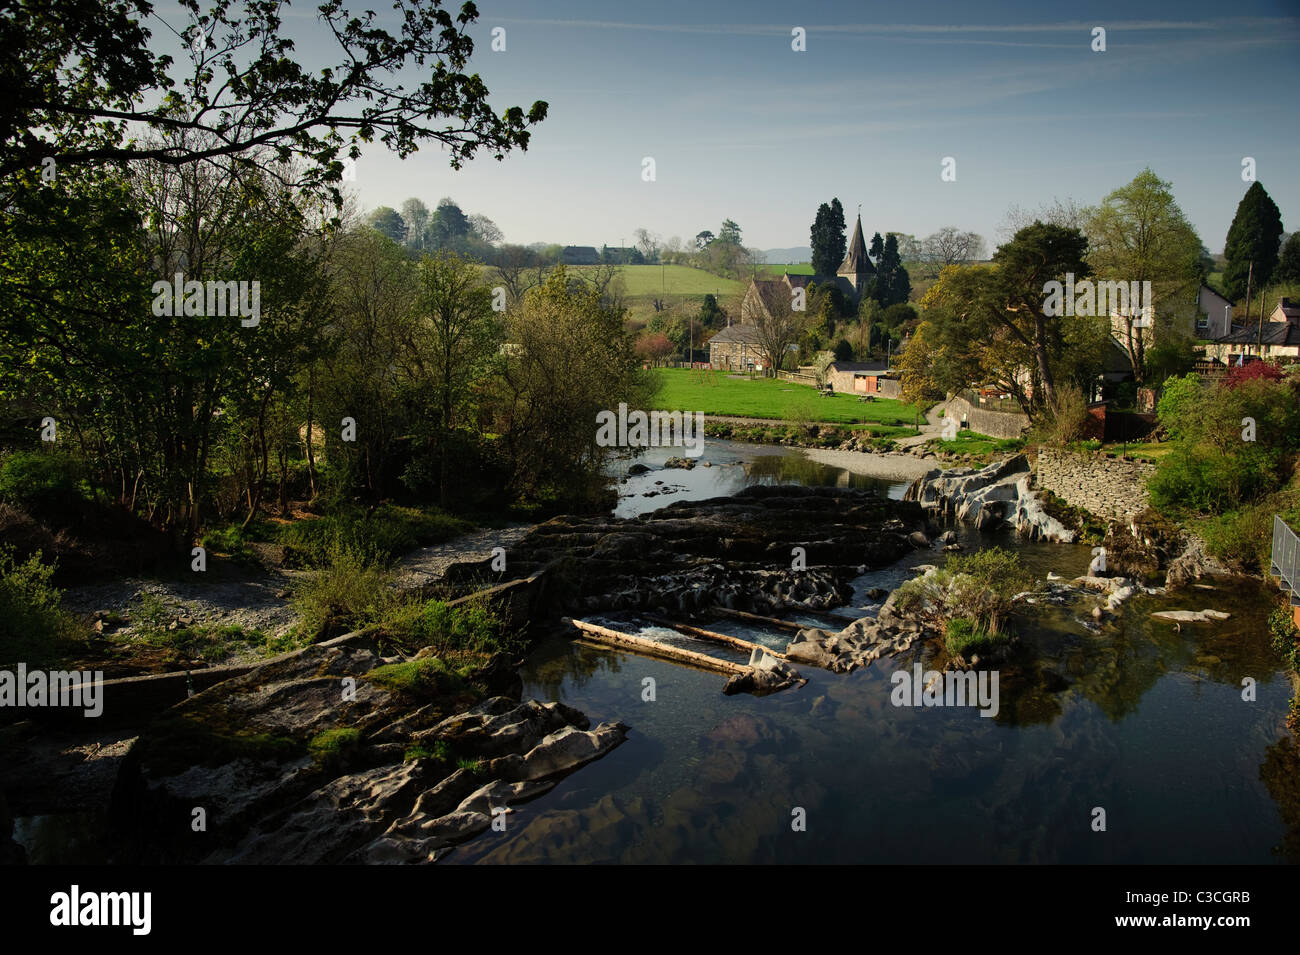 The river Wye flowing through Rhaydaer Powys mid wales uk - Stock Image